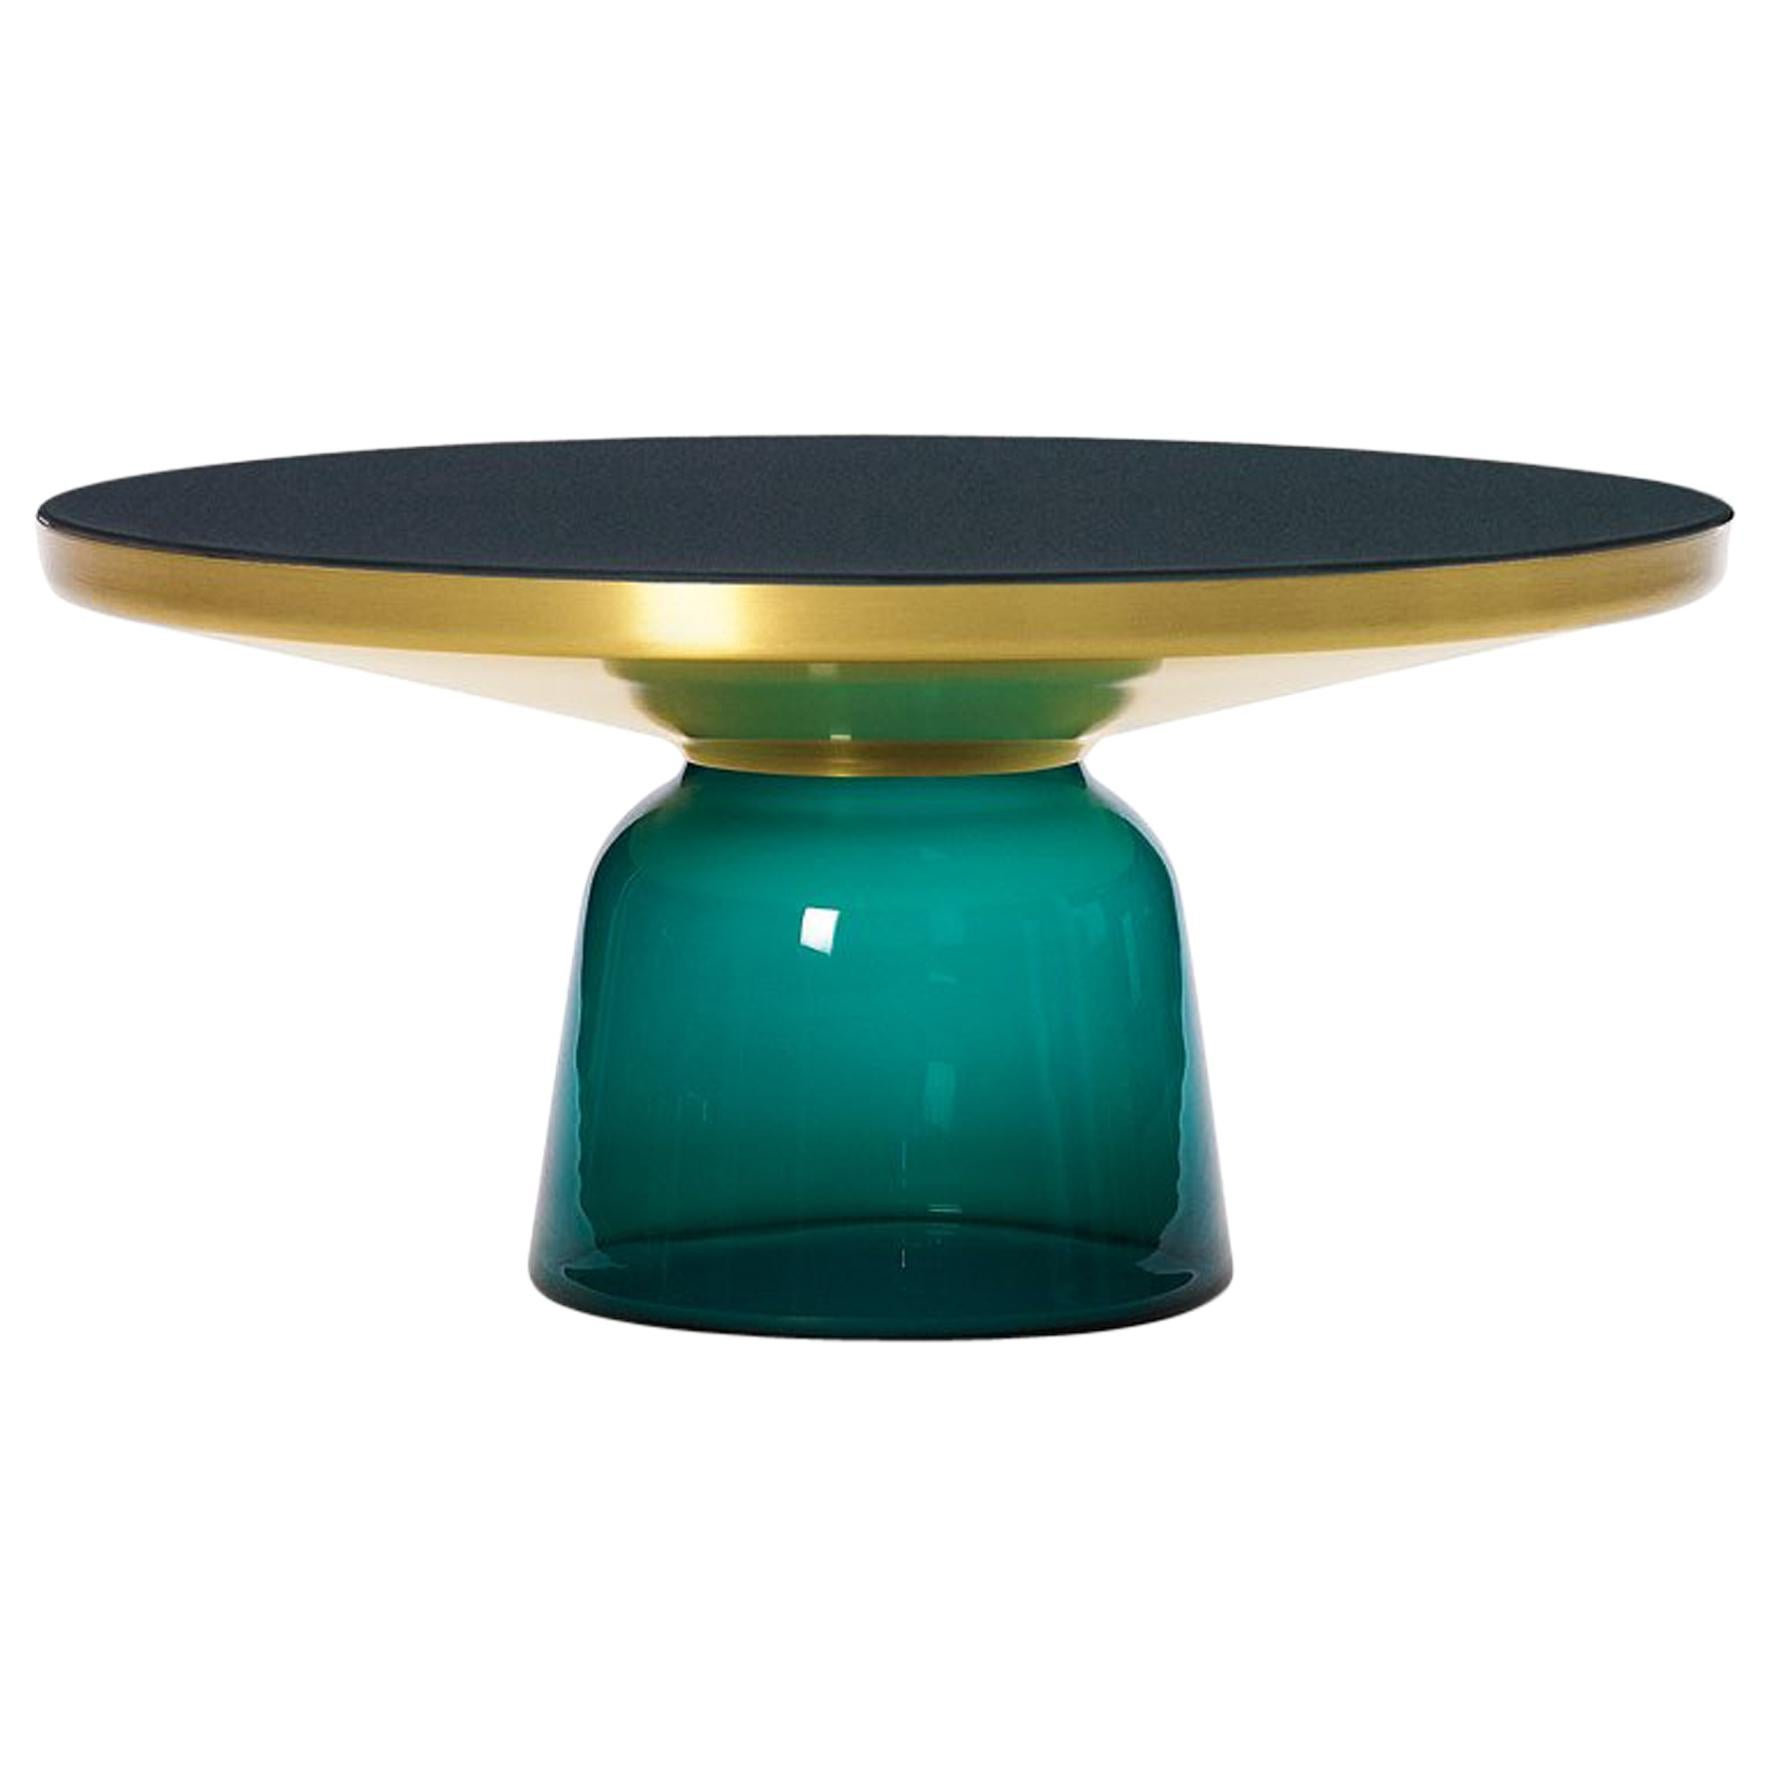 ClassiCon Bell Coffee Table in Brass and Emerald Green by Sebastian Herkner